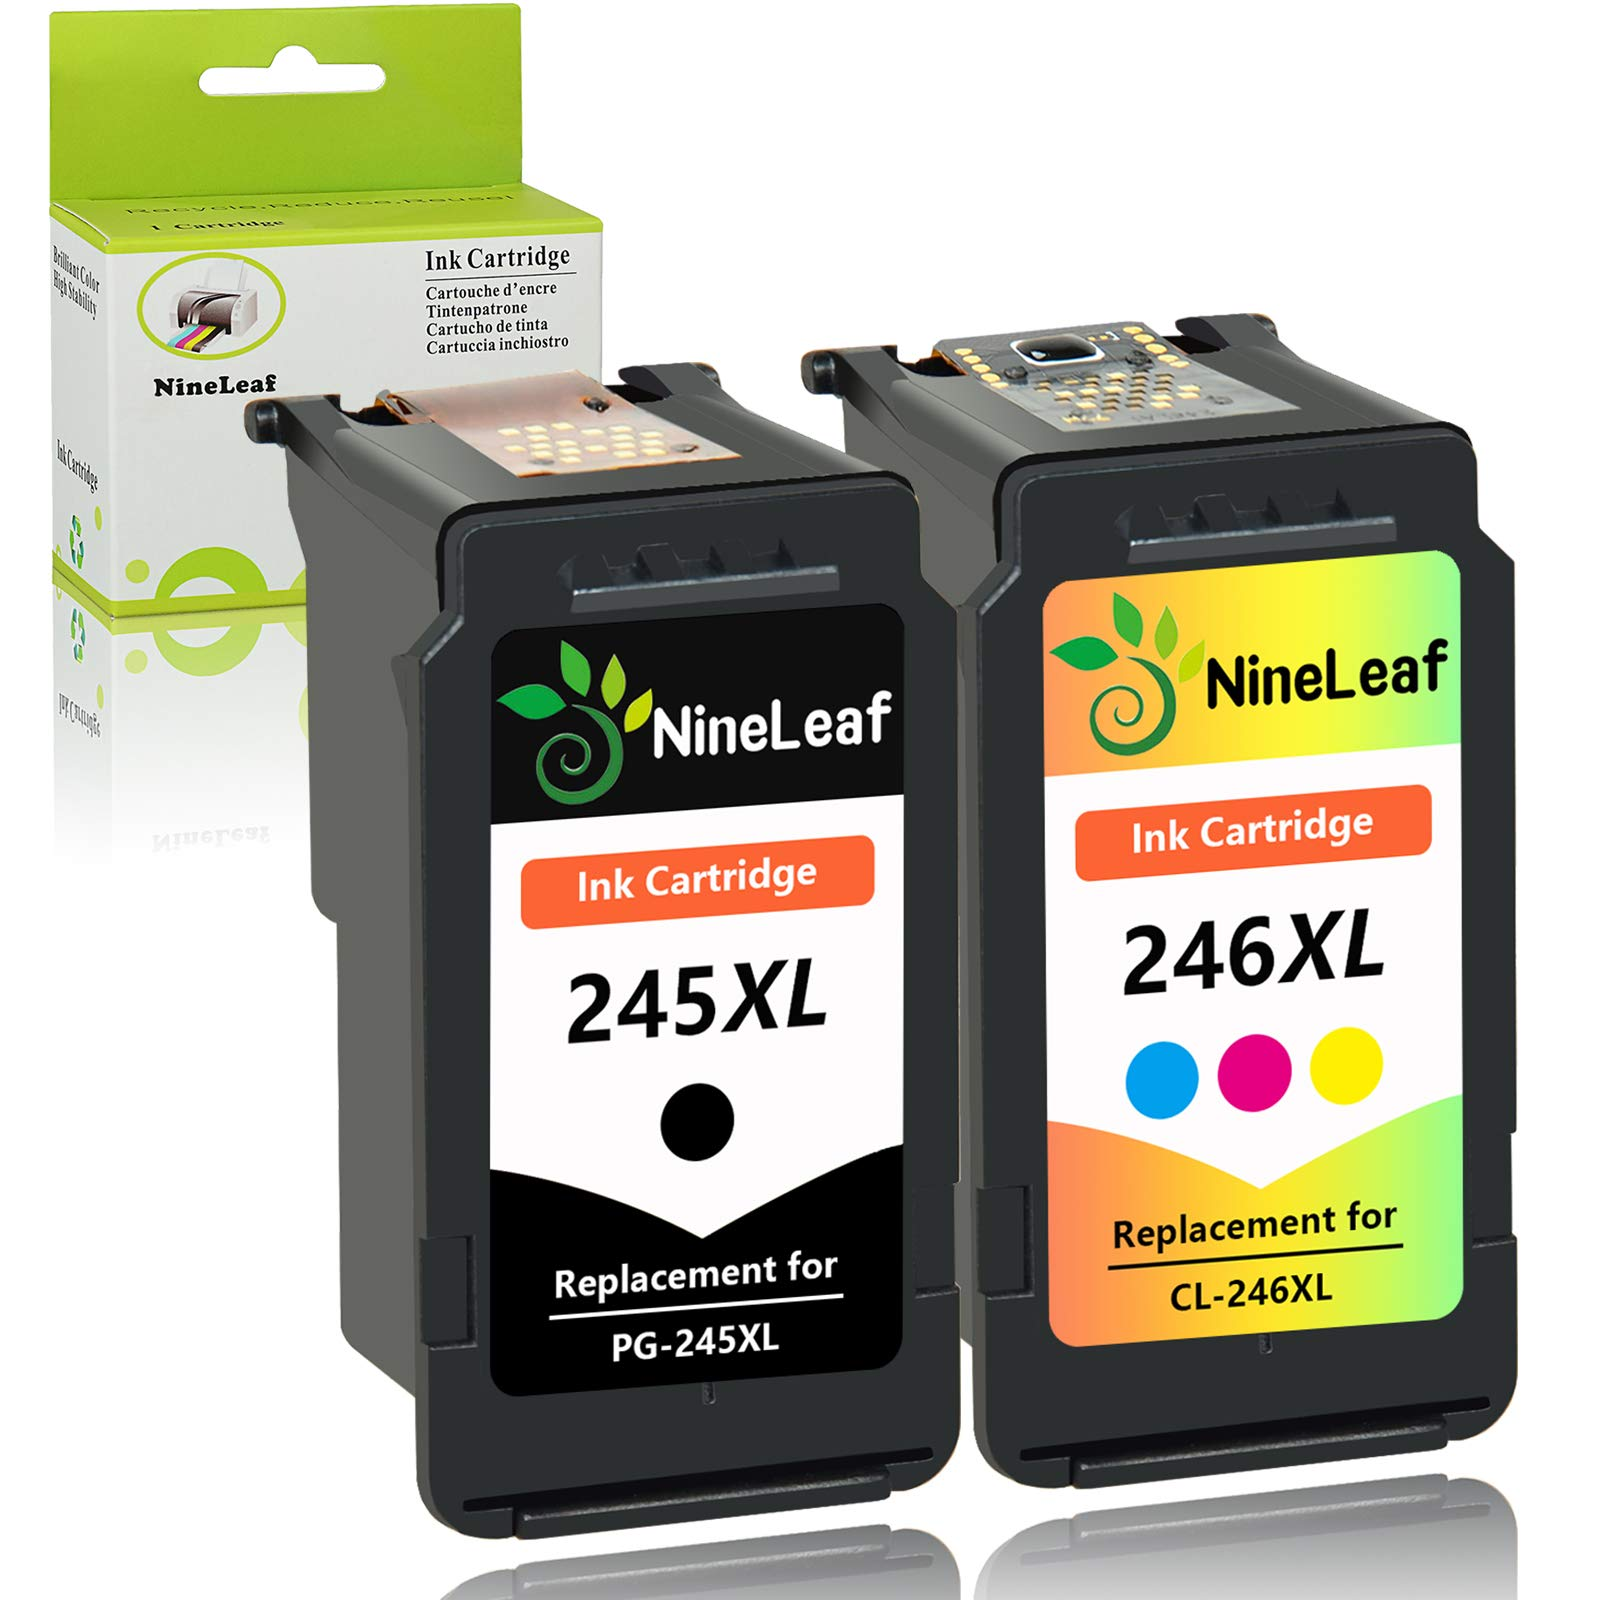 NineLeaf Remanufactured Ink Cartridge Compatible for Canon PG 245XL 246 245 XL with Ink Level Indicator PIXMA iP2820 MG2420 MG2520 2920 MG2922 MG2924 MX492 MX490 (1 Black 1 Tri-Color,2 Pack)